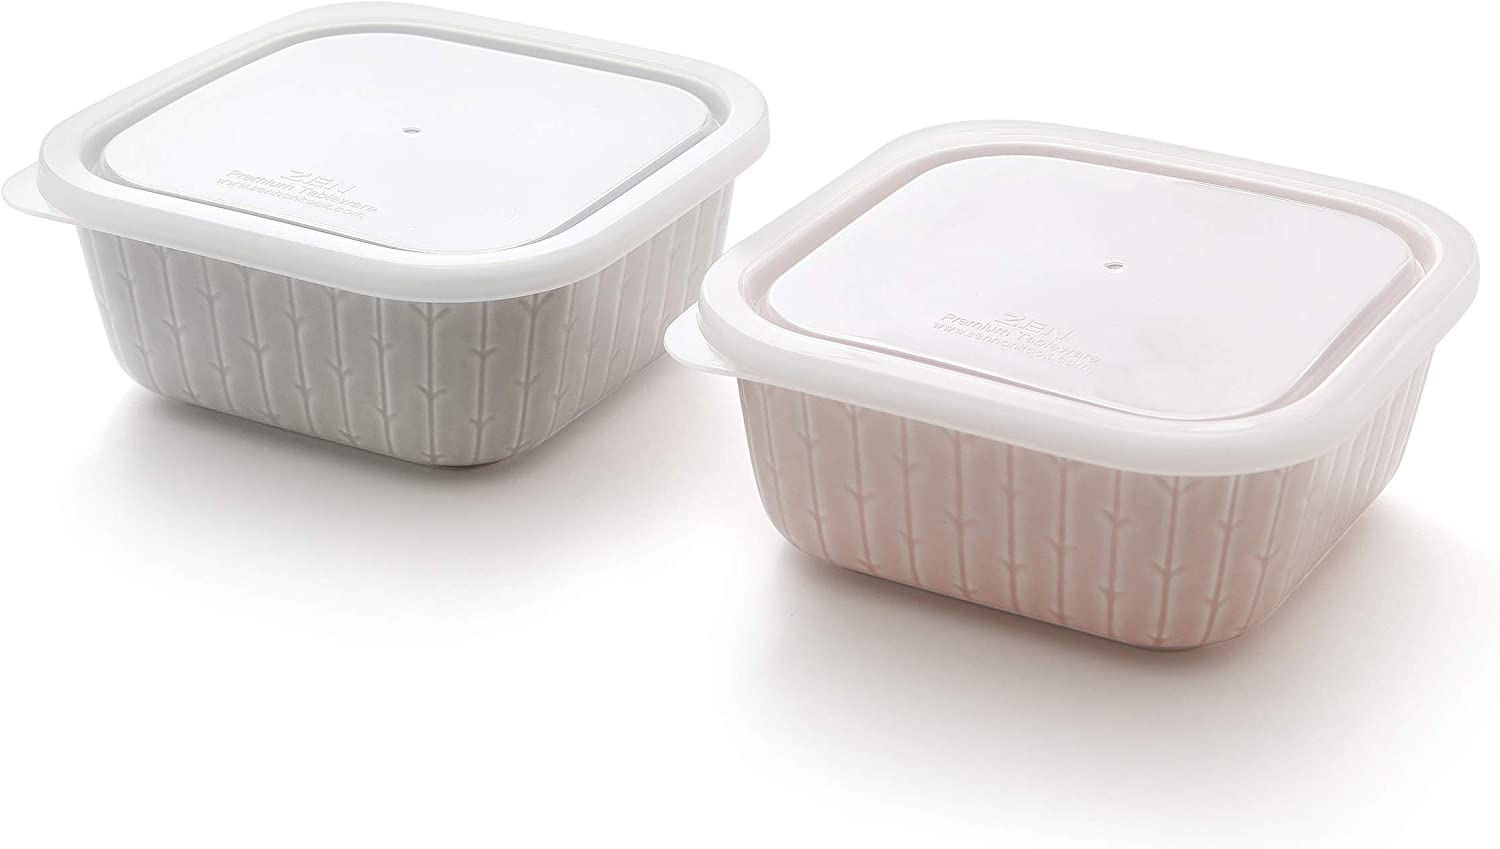 ZEN Color Glazed Forest Porcelain Serve and Store Airtight Container Set of 2, 16oz (SQUARE)